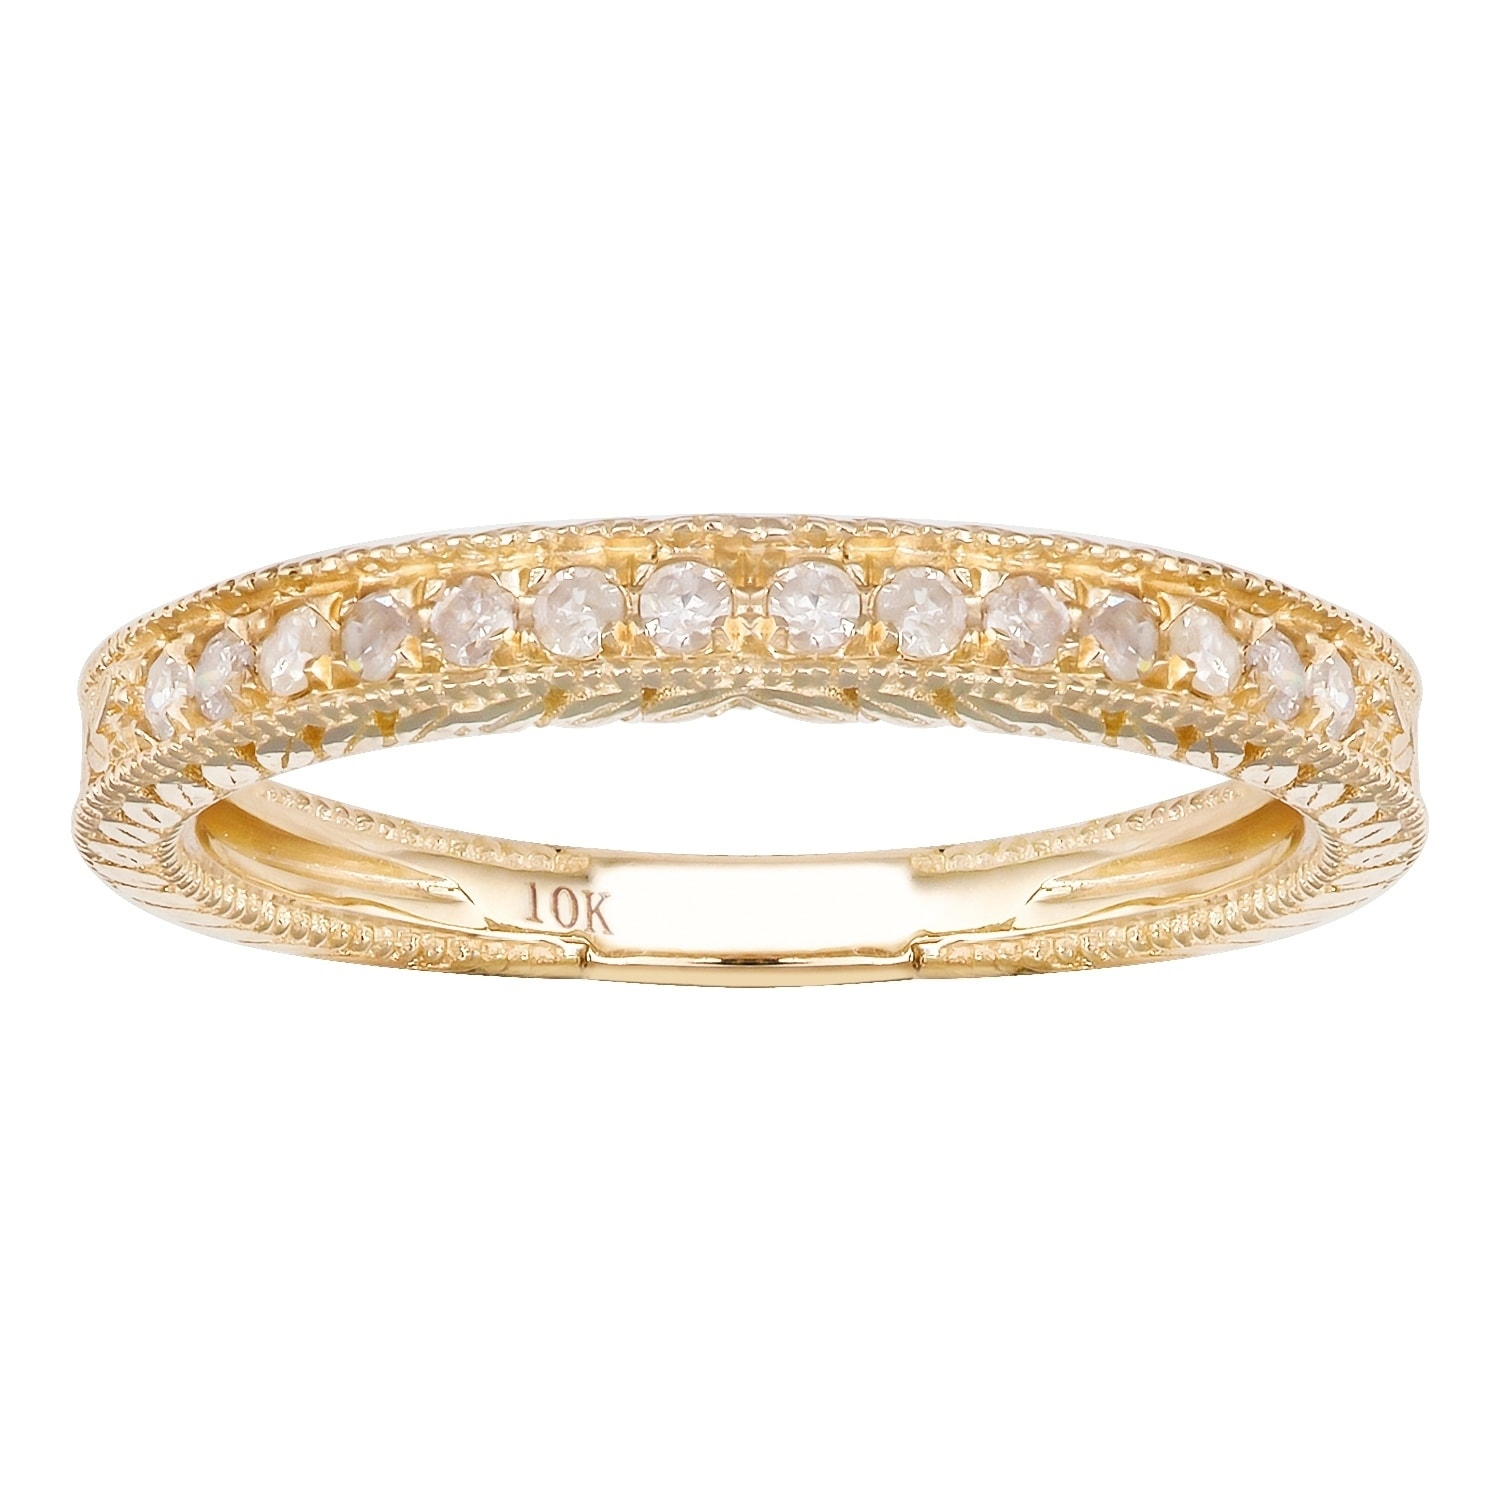 Size-8 Diamond Wedding Band in 14K Pink Gold 1//8 cttw, G-H,I2-I3